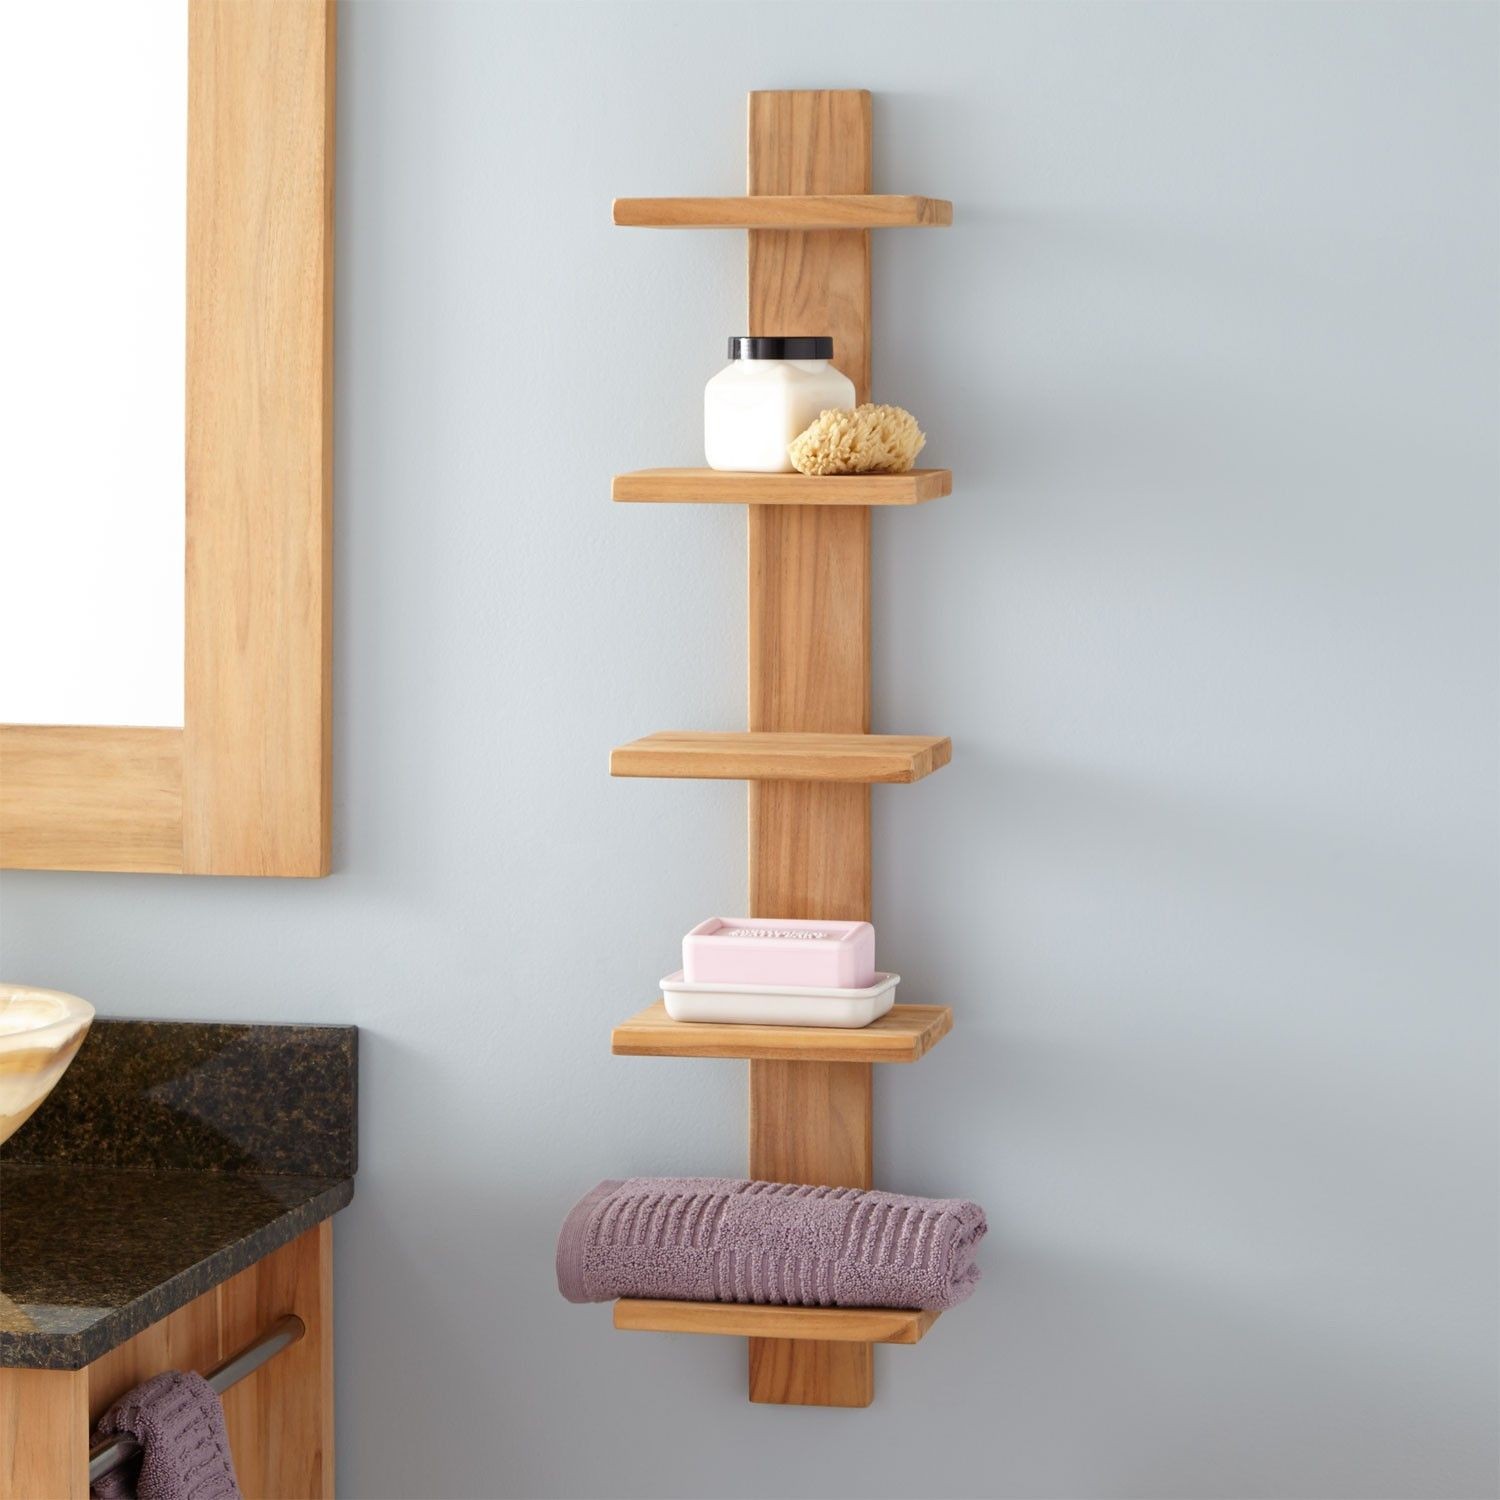 Bastian Hanging Bathroom Teak Shelf Five Shelves Bathroom Teak Bathroom Diy Wooden Shelves Bathroom Wall Shelves